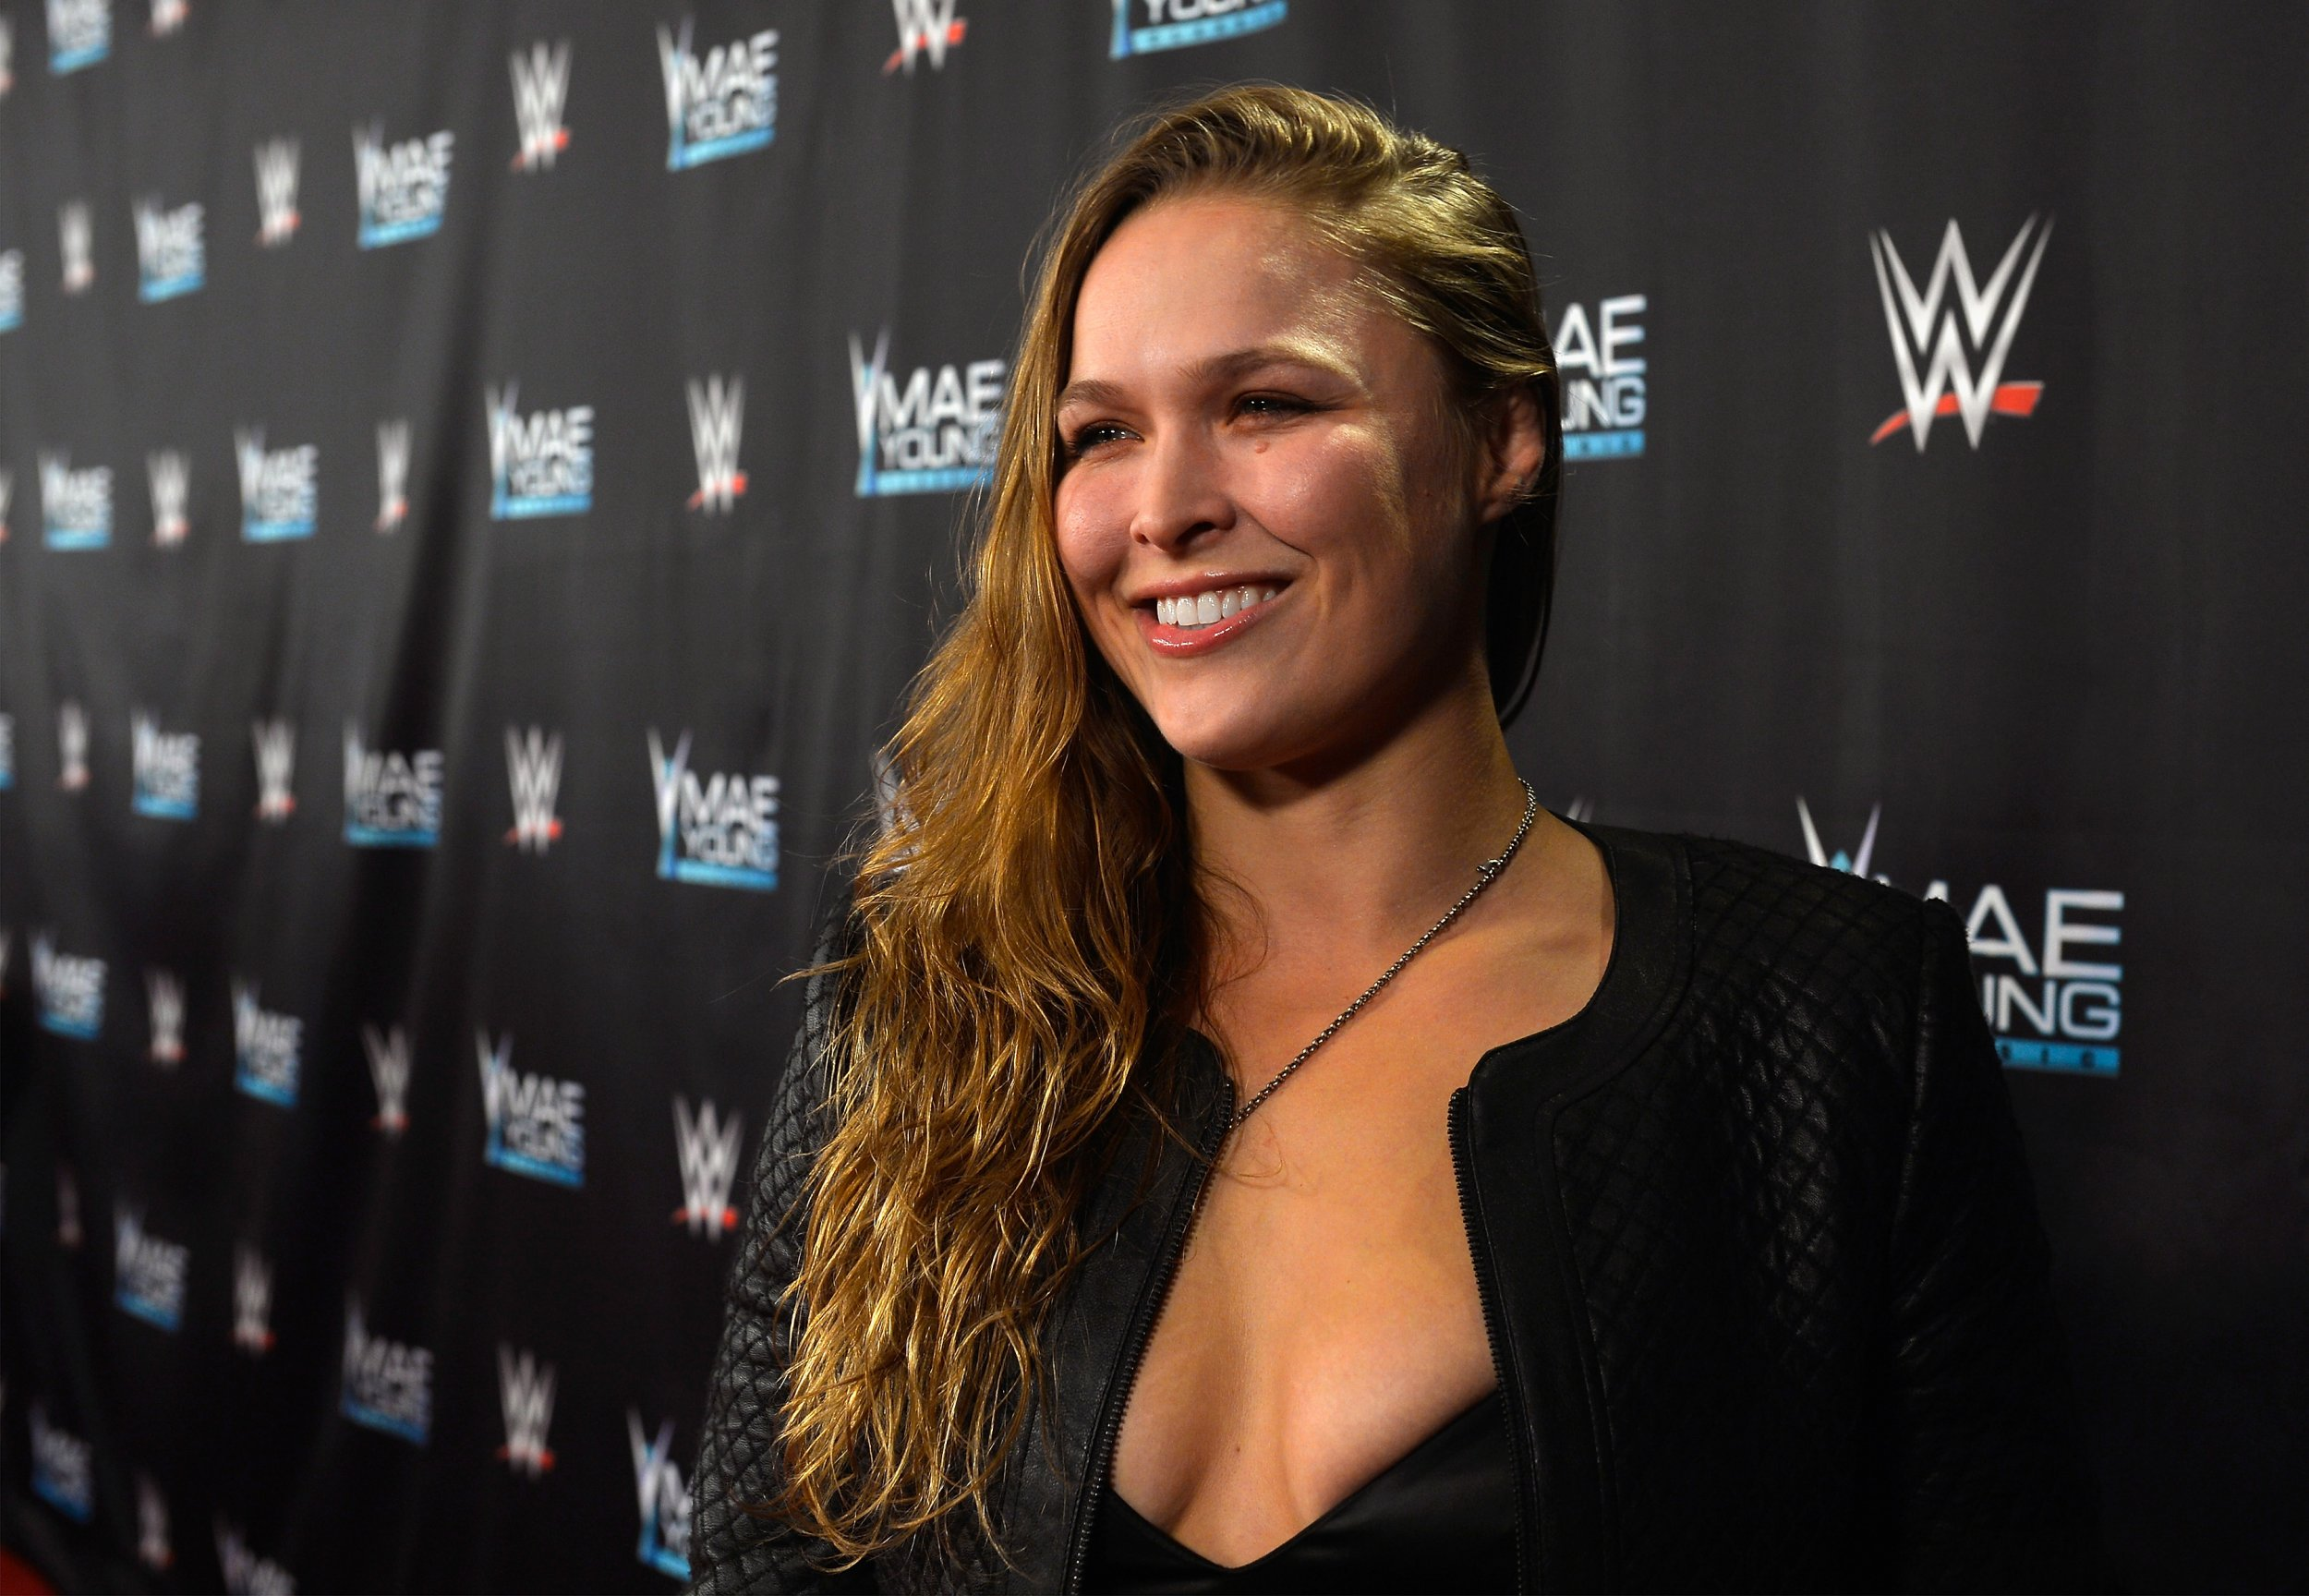 Ronda Rousey joining WWE?